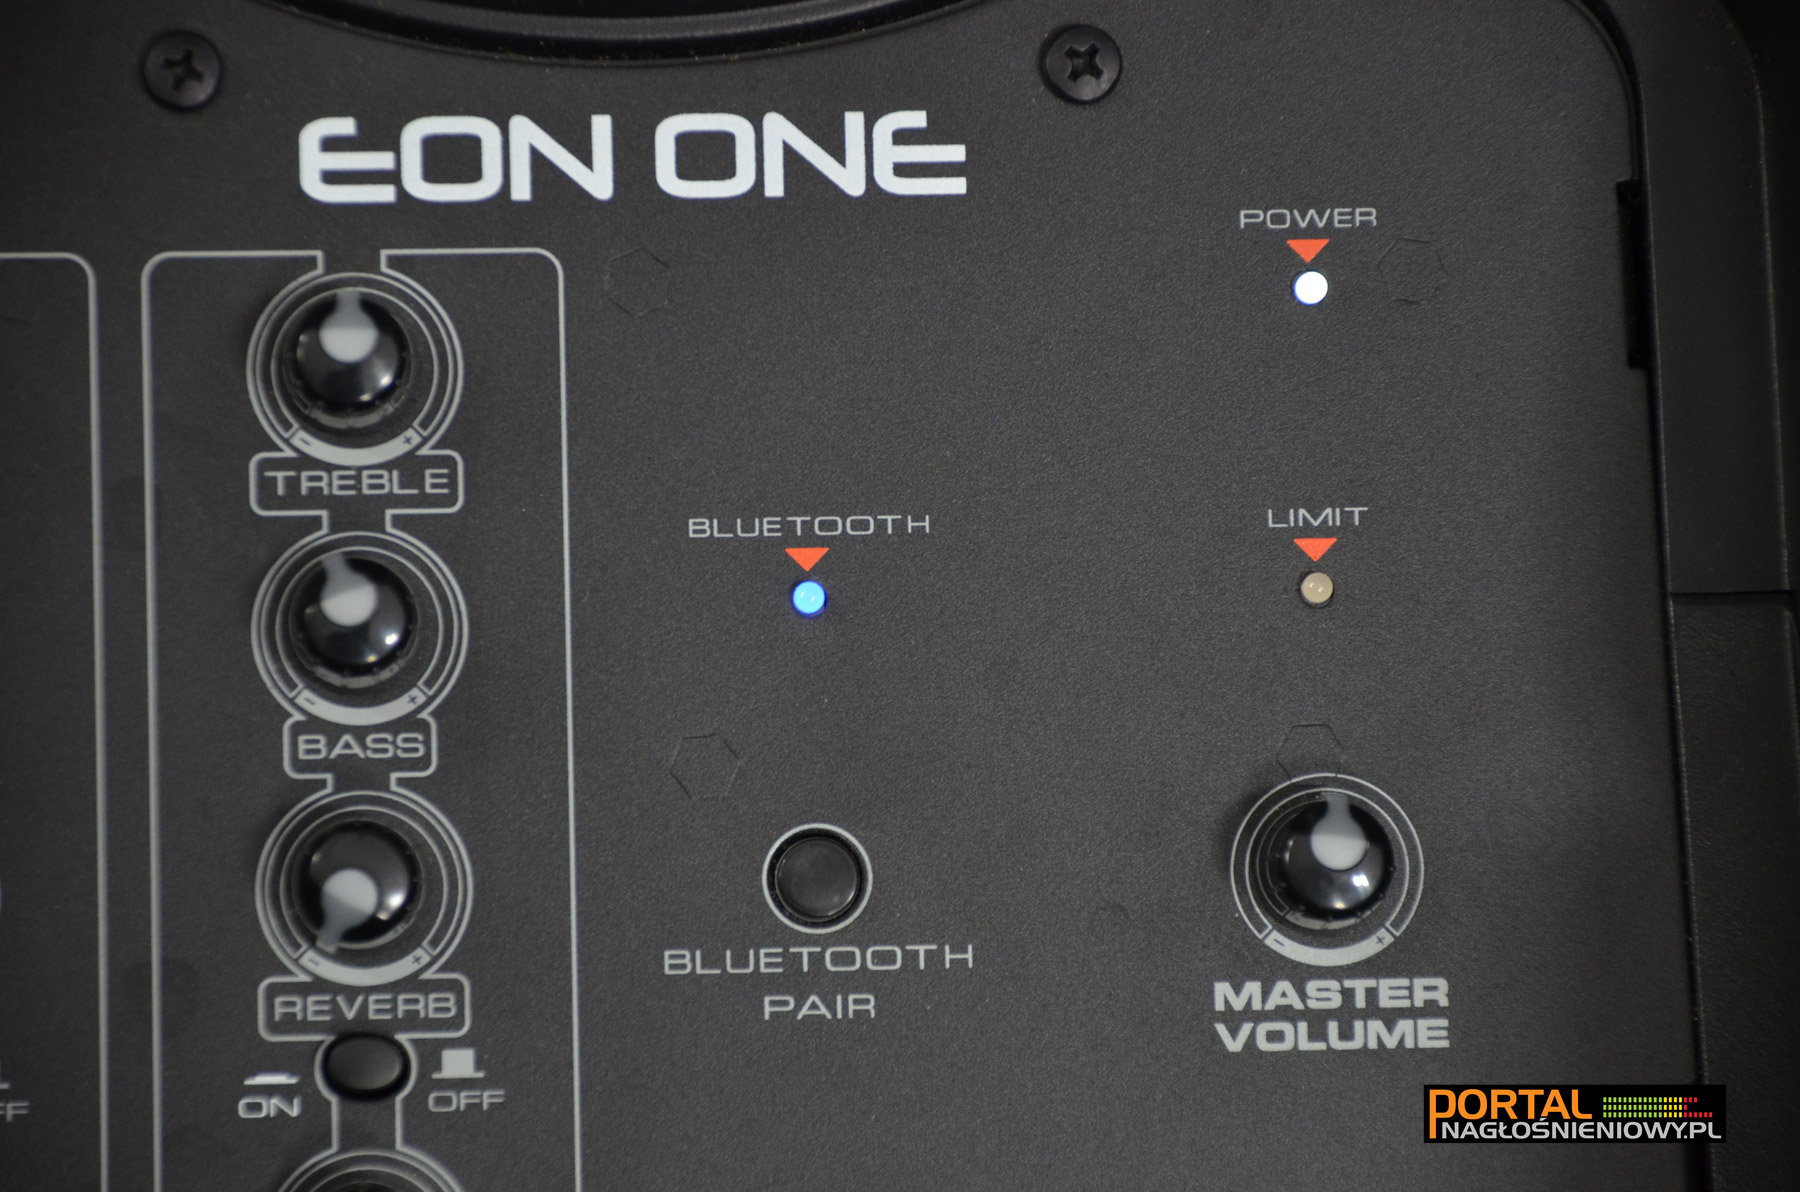 JBL-EON-ONE-sub-panel-Bluetooth